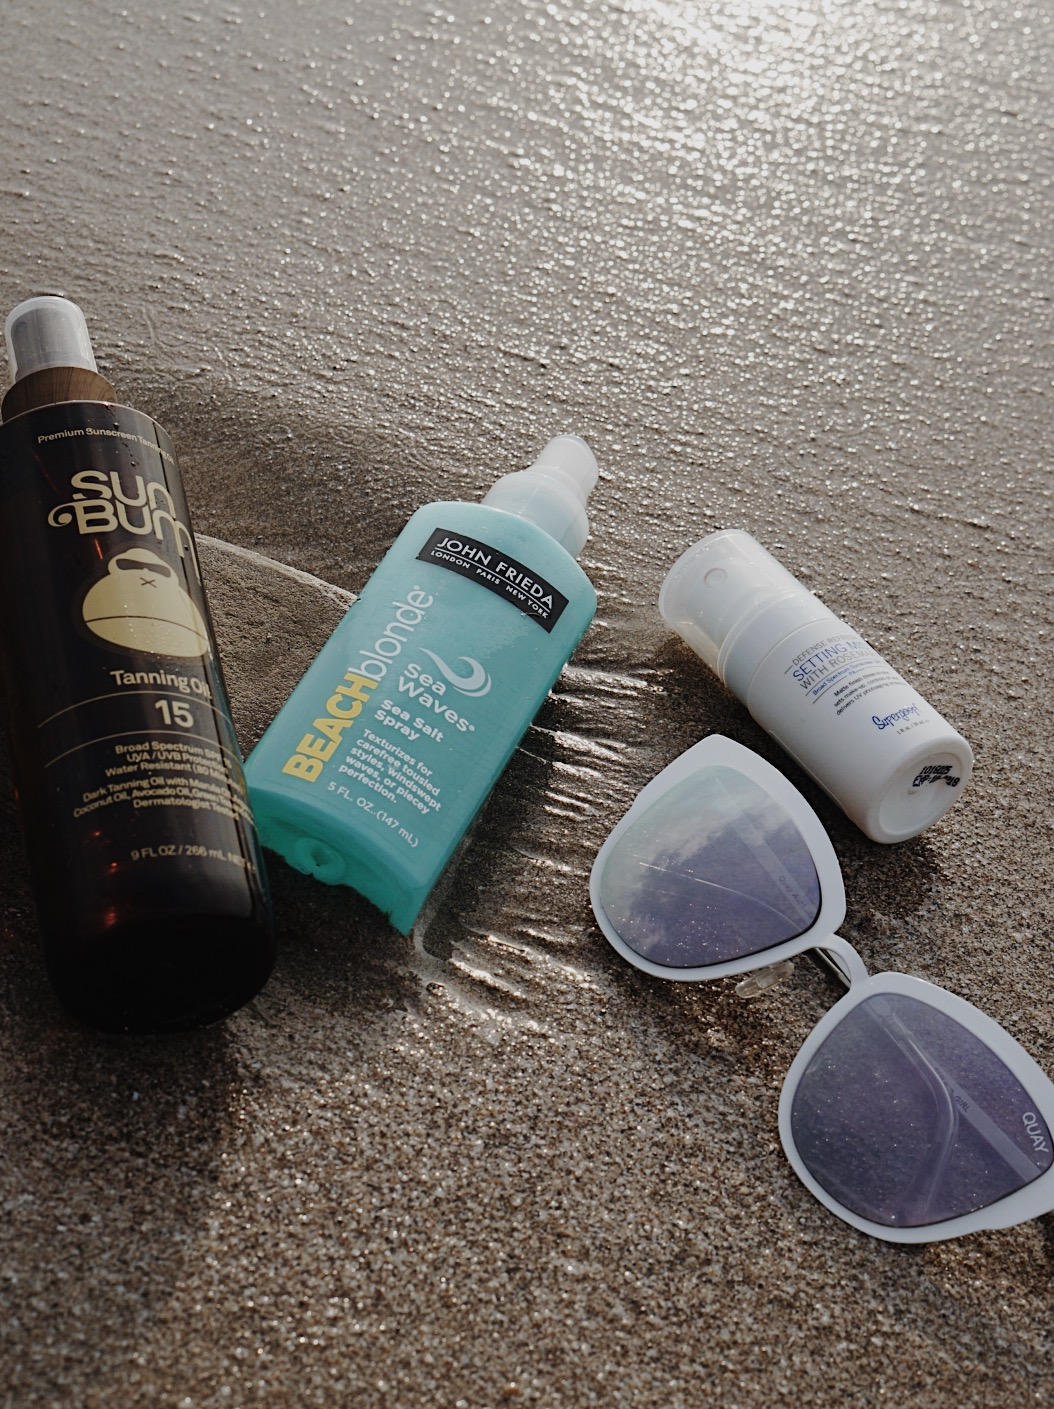 Beach Beauty Haul www.flightofspice.com